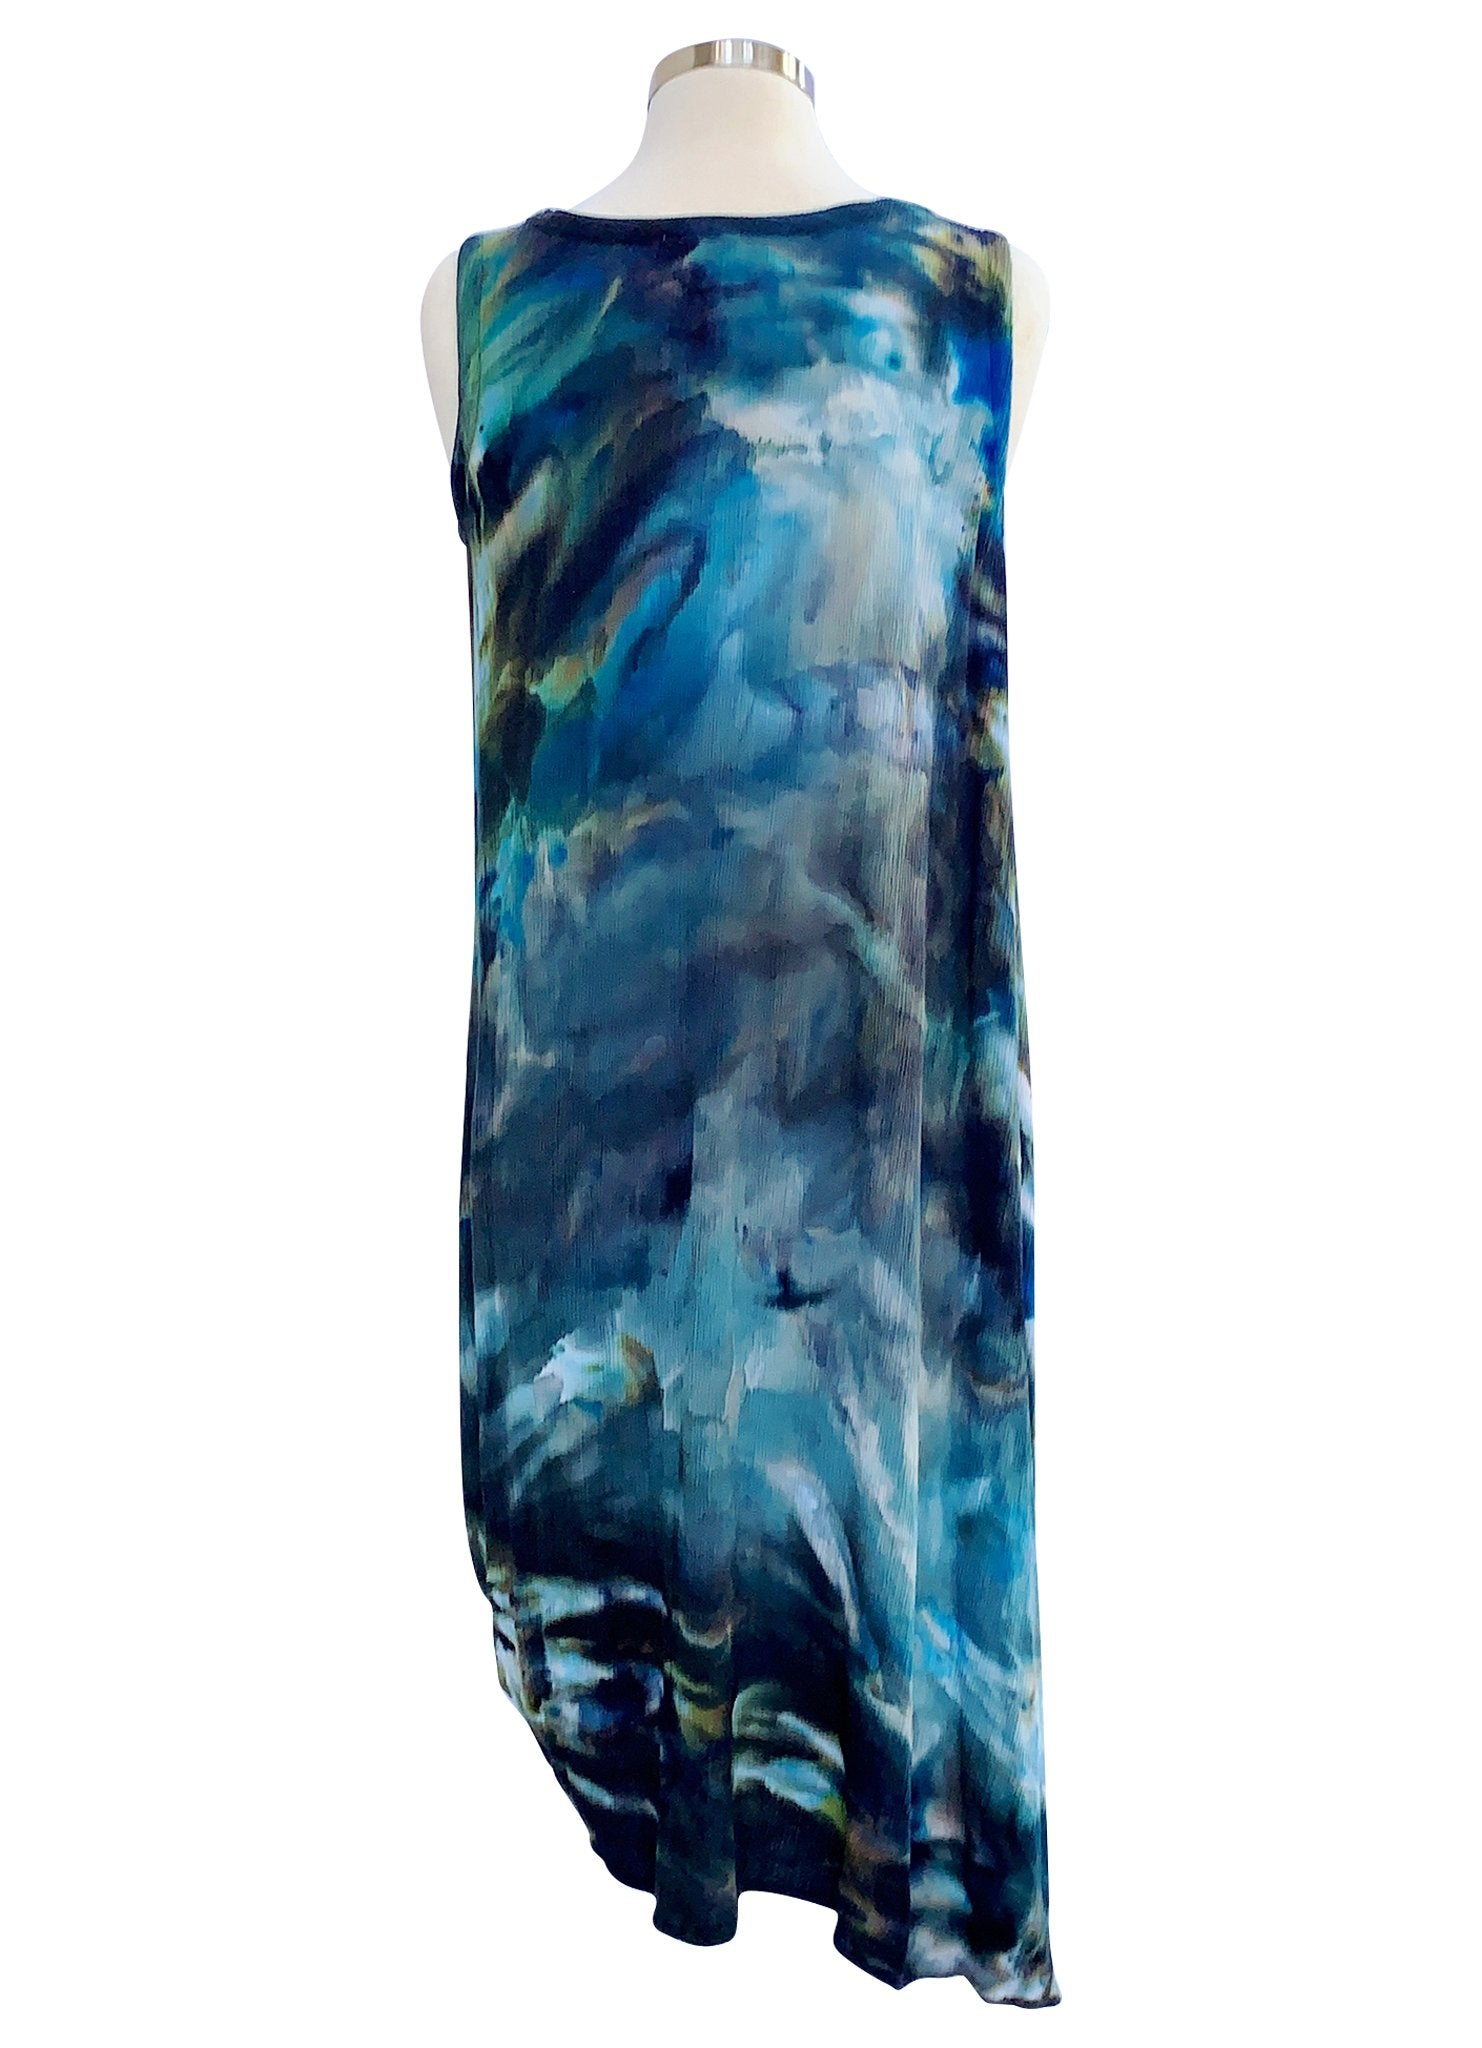 Sleeveless A-Line Dress (Rayon Gauze) in Blue Morpho - Dress - Dyetology